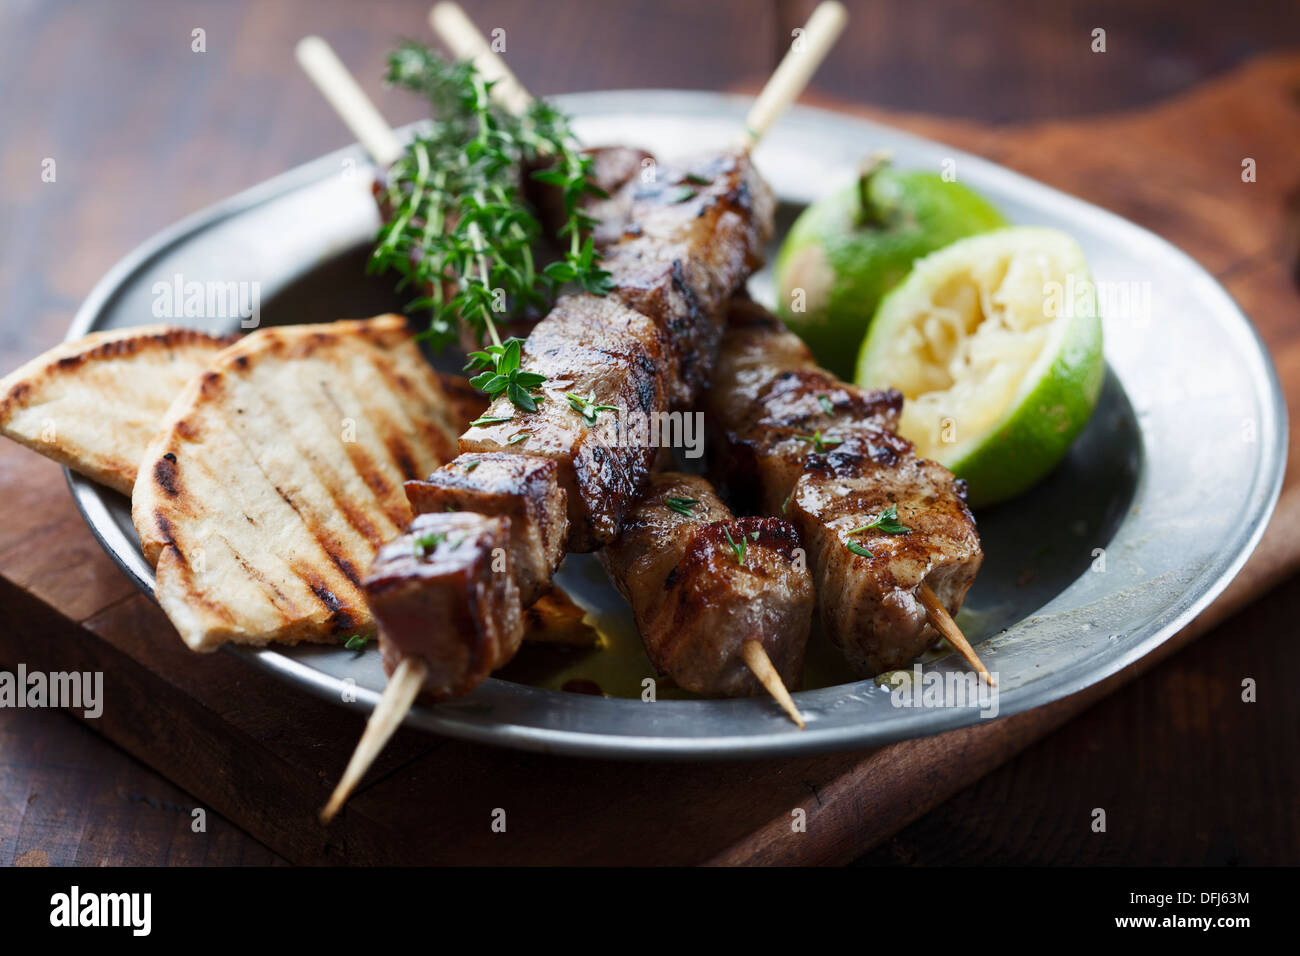 meat skewer with herbs, lime and pita bread - Stock Image